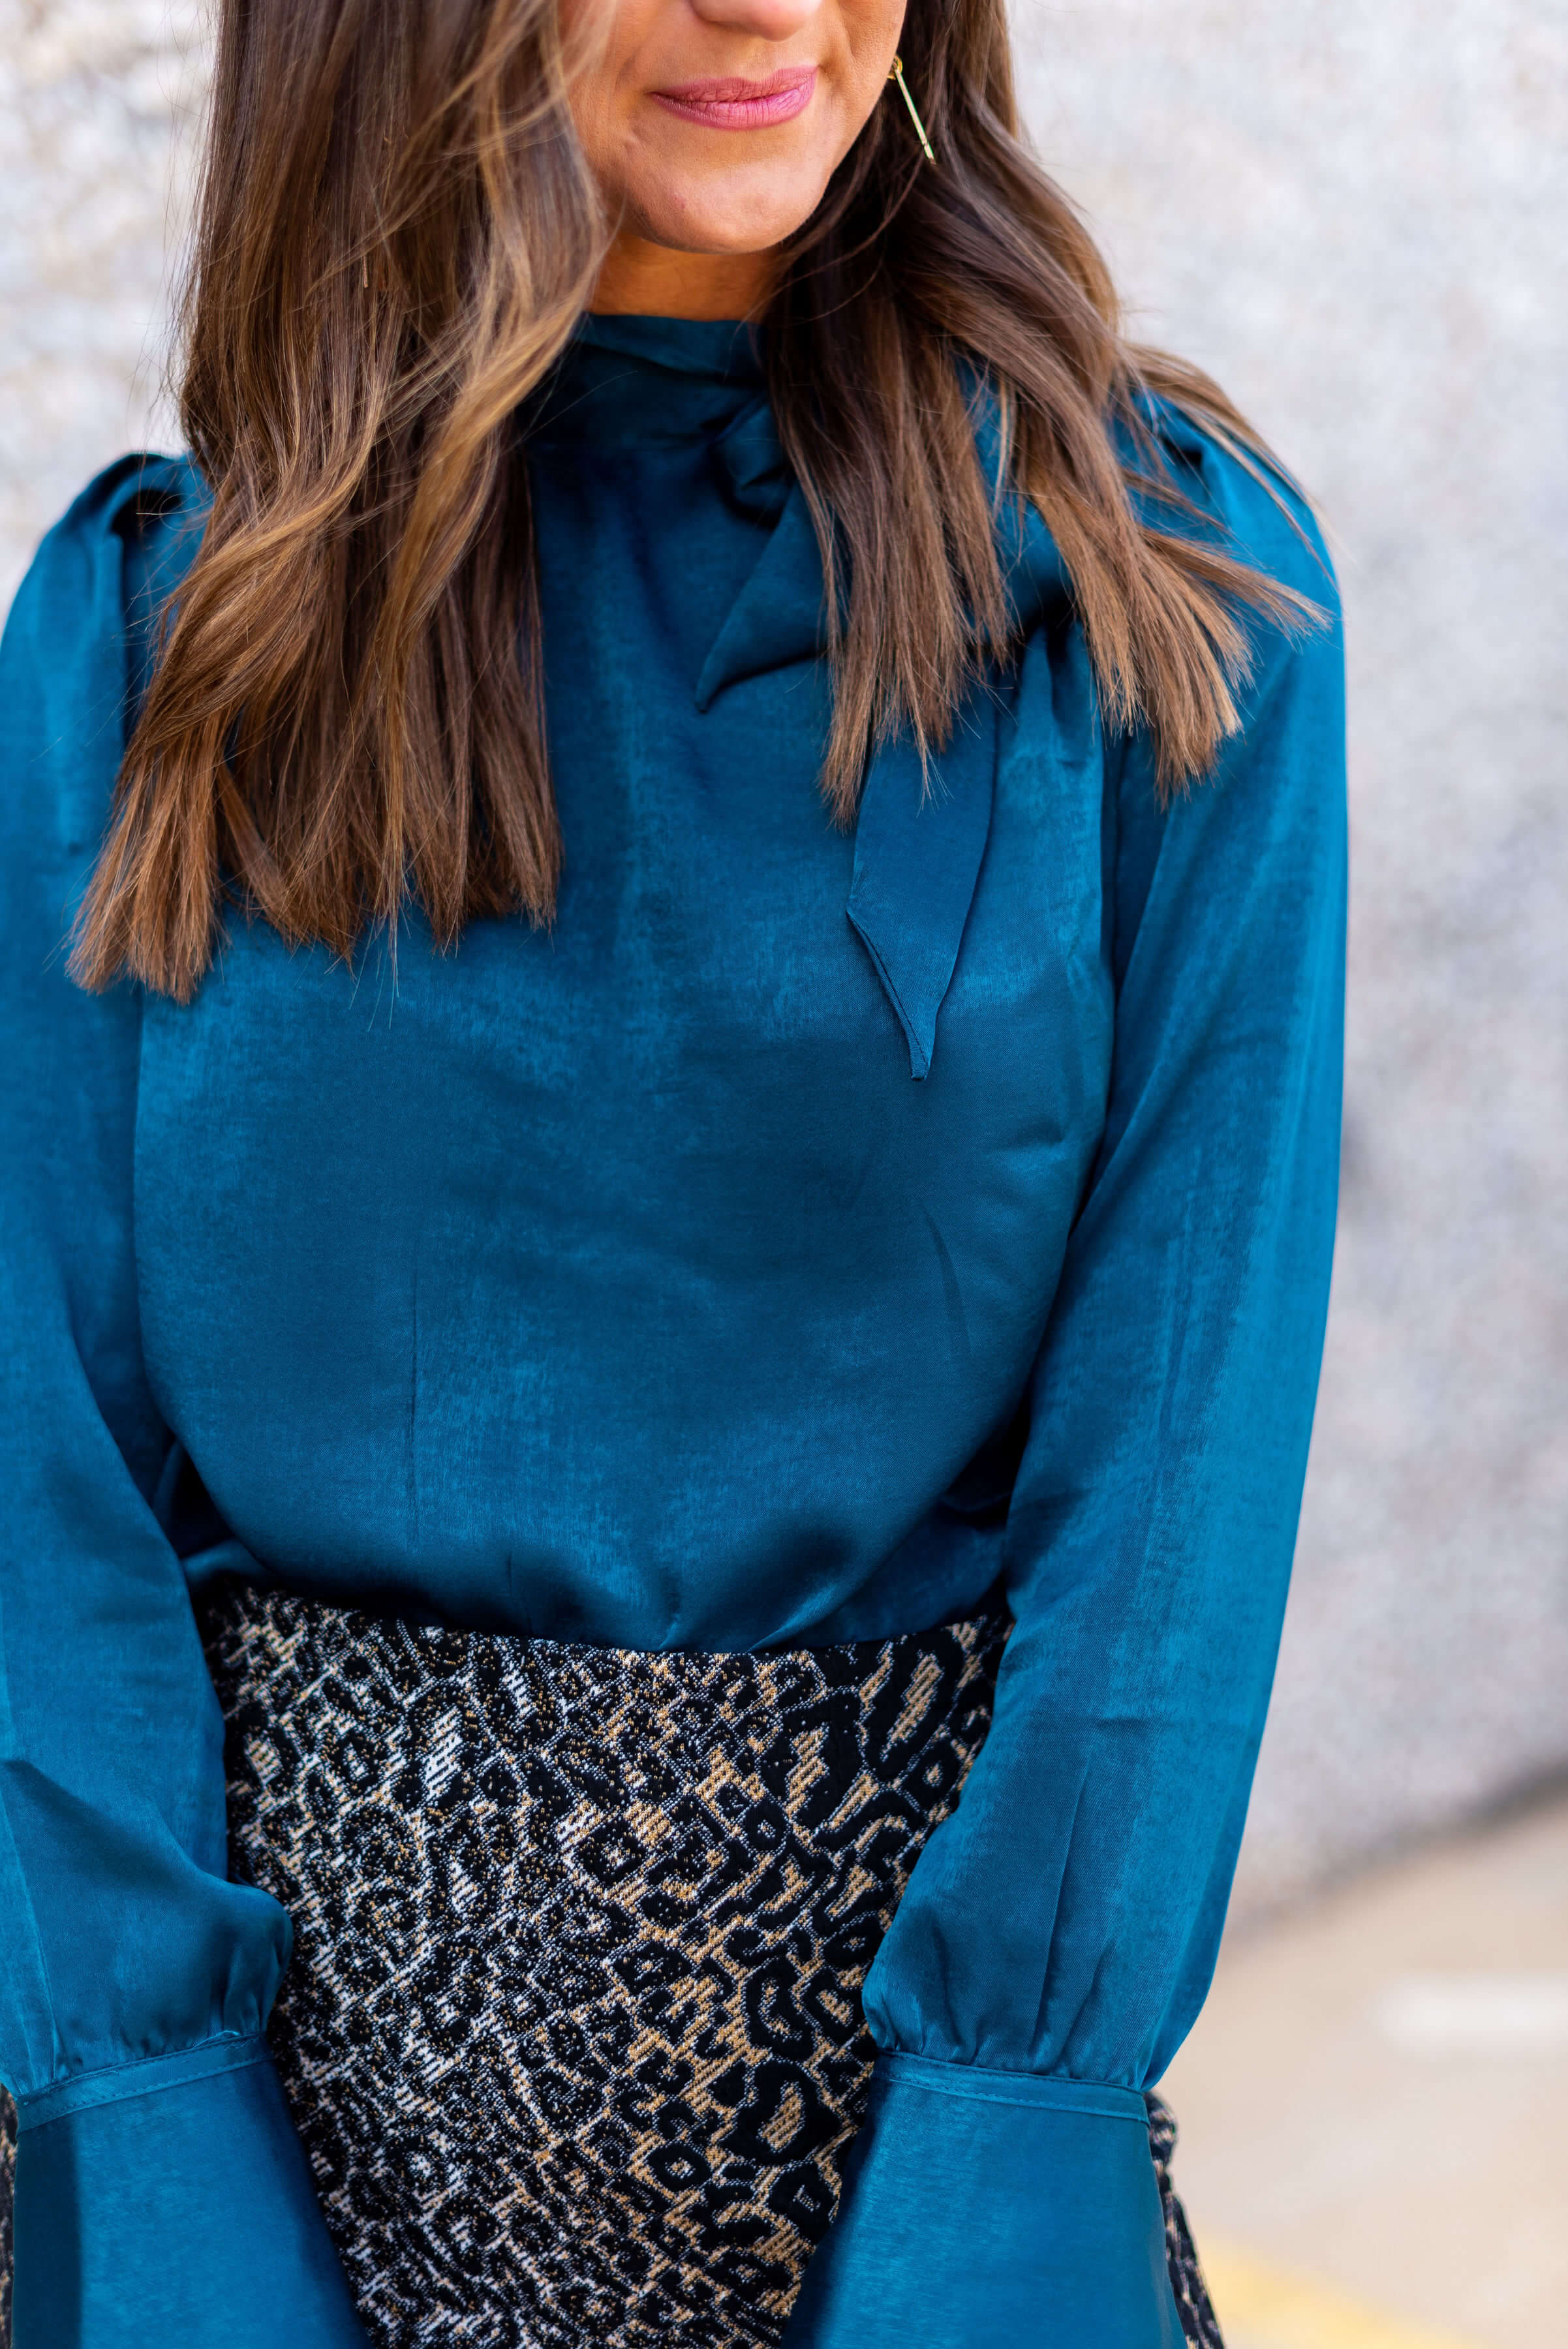 JcPenney Workwear | Teal tie shoulder blouse | Stylish Workwear | Style Your Senses